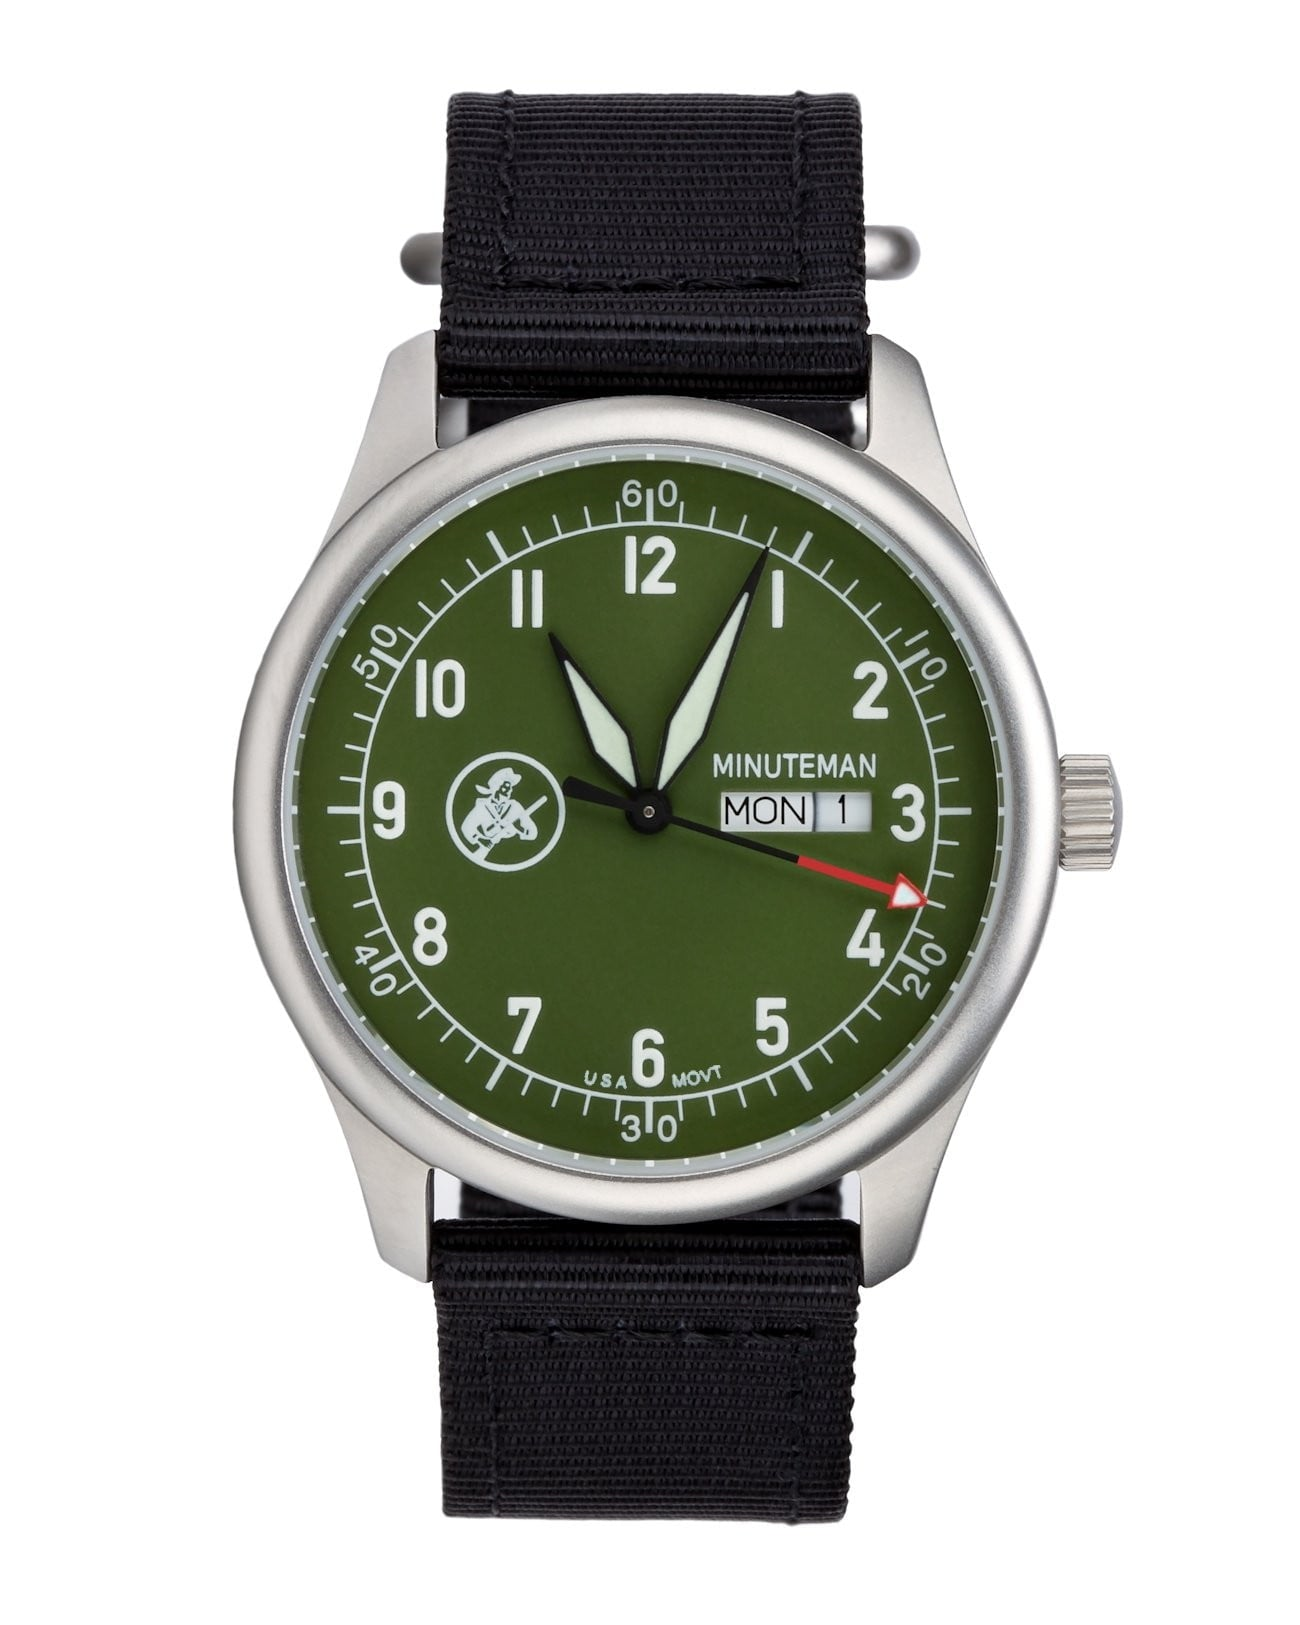 In Stock Minuteman  A11 Field Watch Powered by Ameriquartz USA Movt Black Nylon Strap OD Green Dial